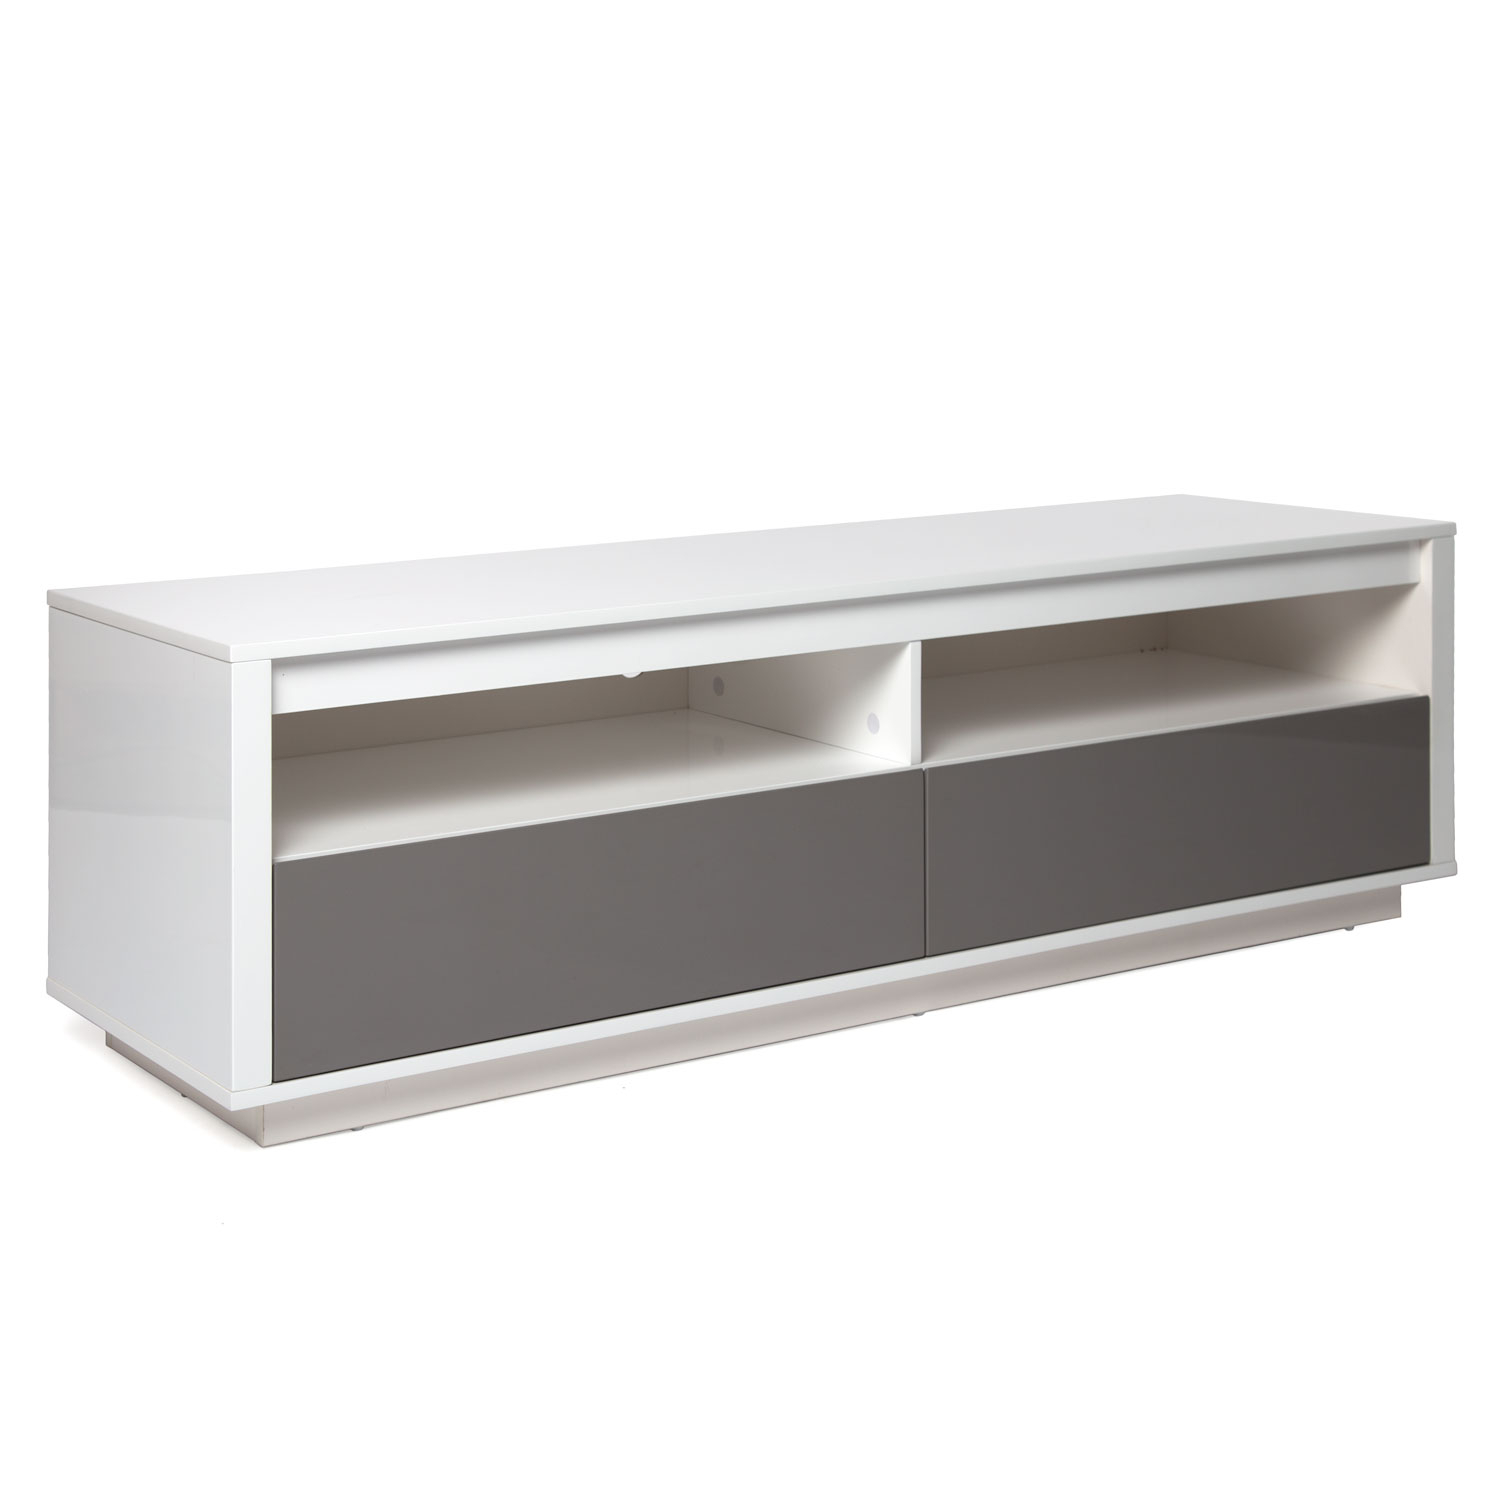 White Tv Stand Walmart 50 Inch Modern Mid Century Contemporary Wall In Century White 60 Inch Tv Stands (View 15 of 30)